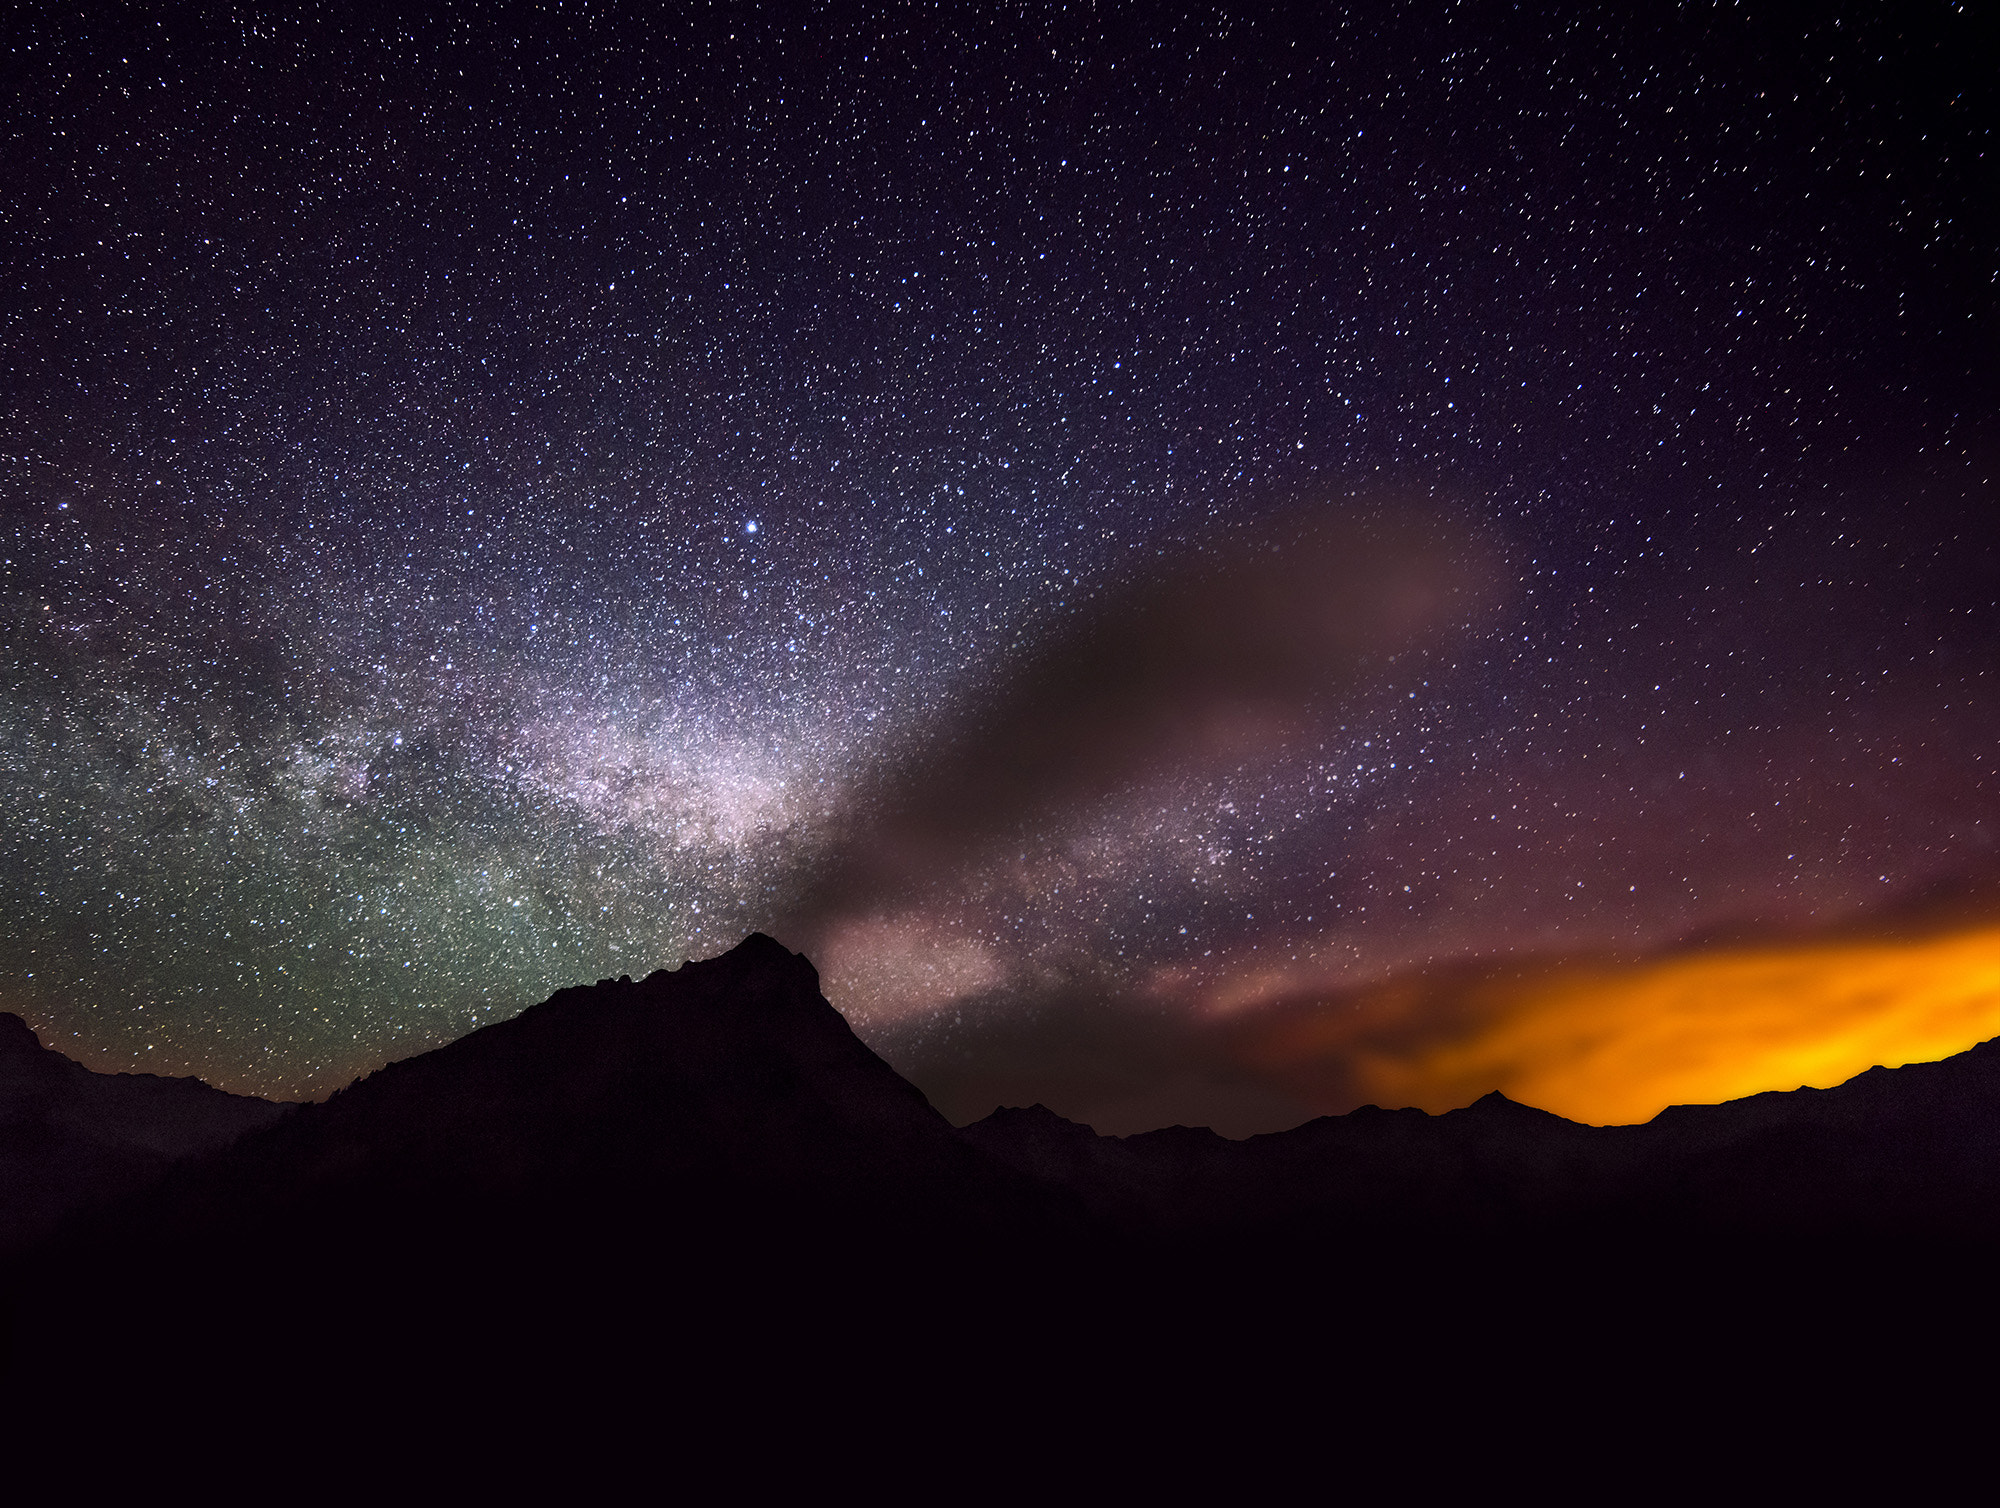 Photograph Fantastic Milky Way by Jonathan Besler on 500px